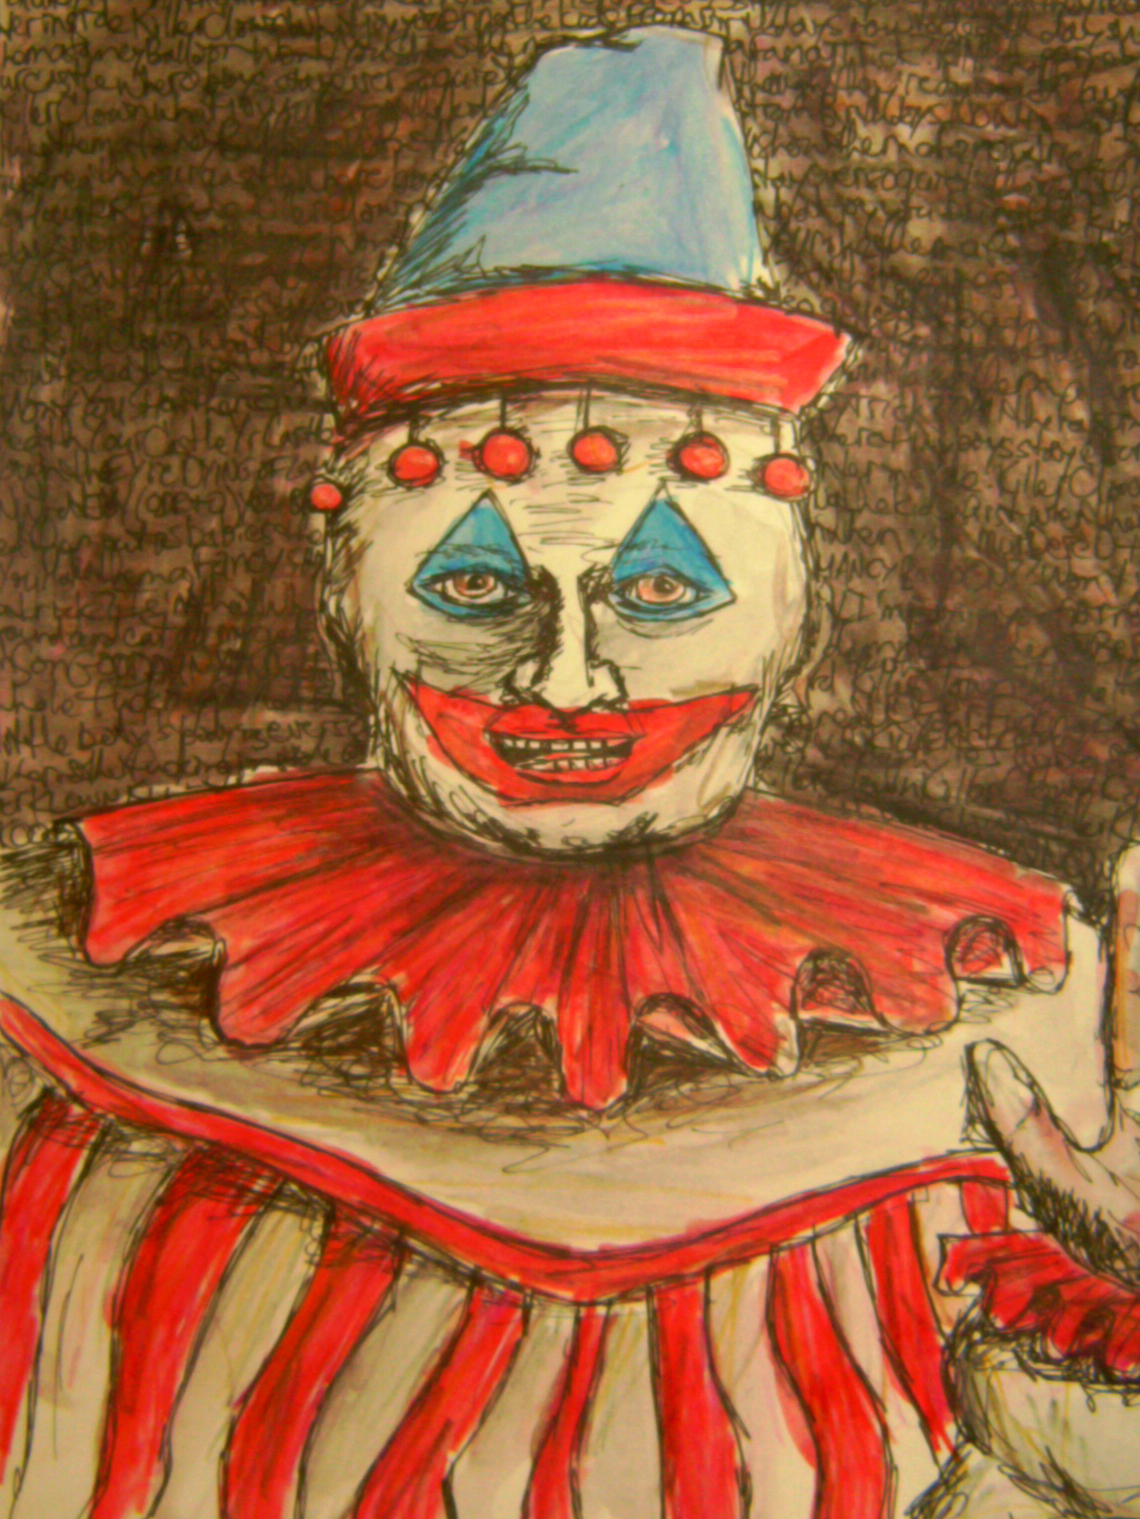 image shows a painting of John Wayne Gacy's character, Pogo the Clown